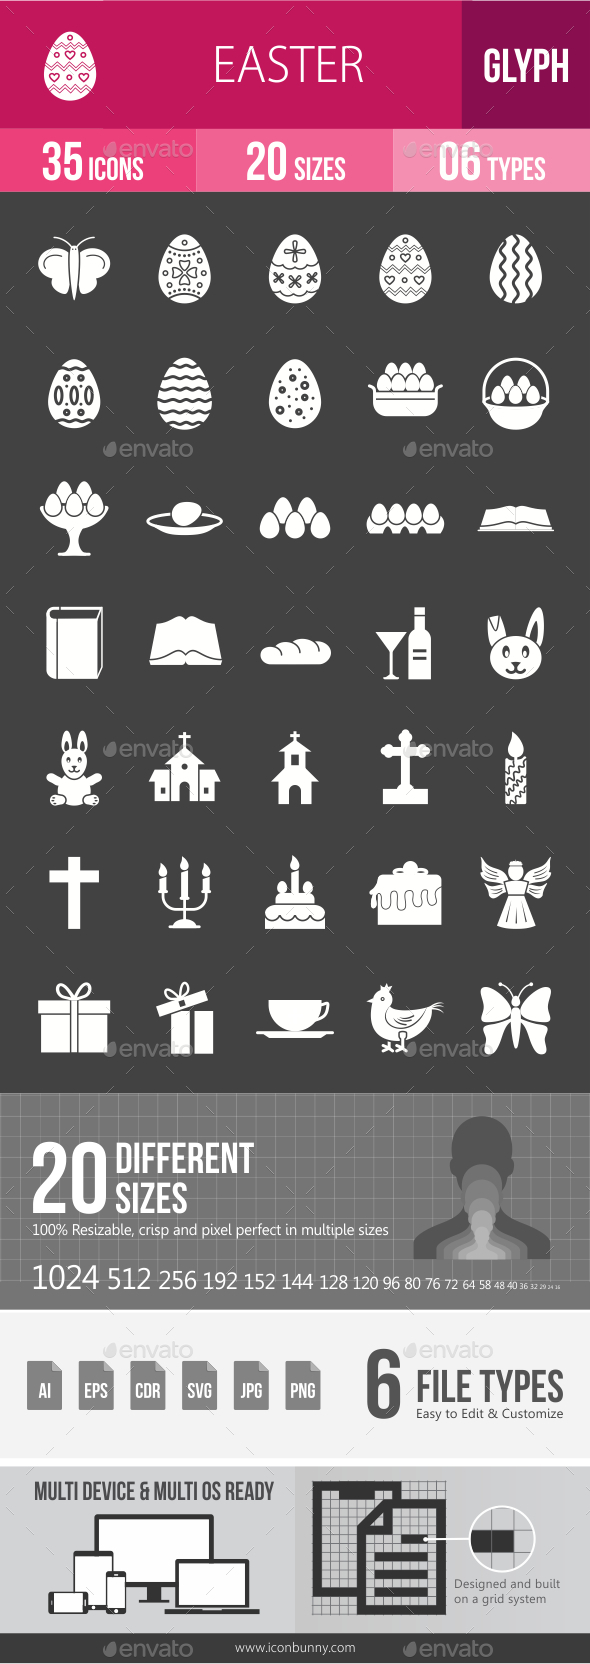 Easter Glyph Inverted Icons - Icons